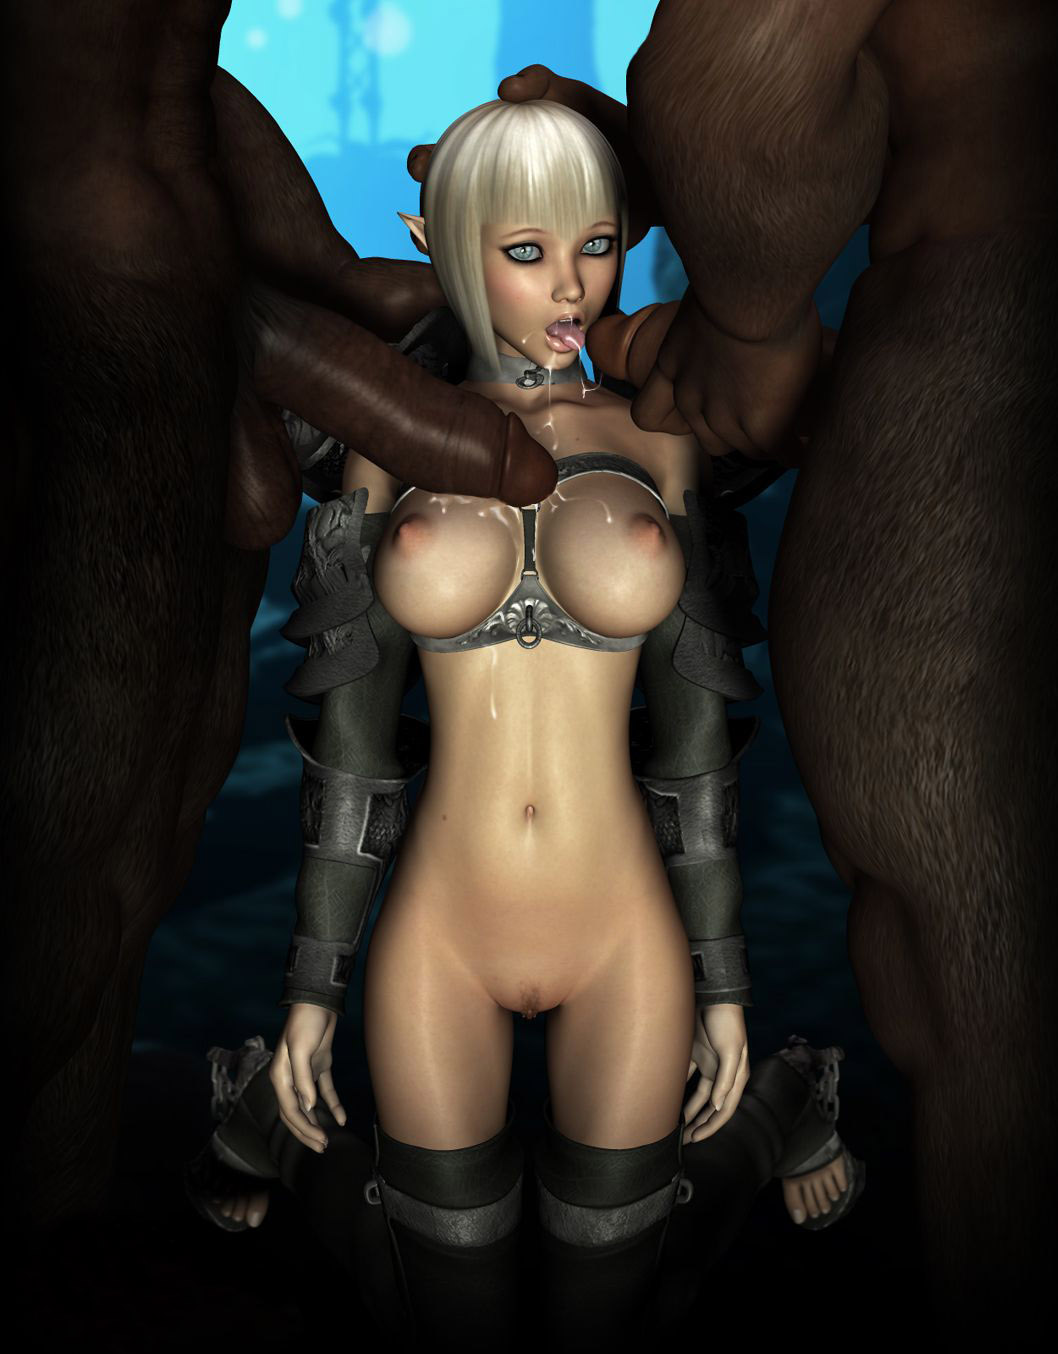 Hentai tauren in bar sex movies